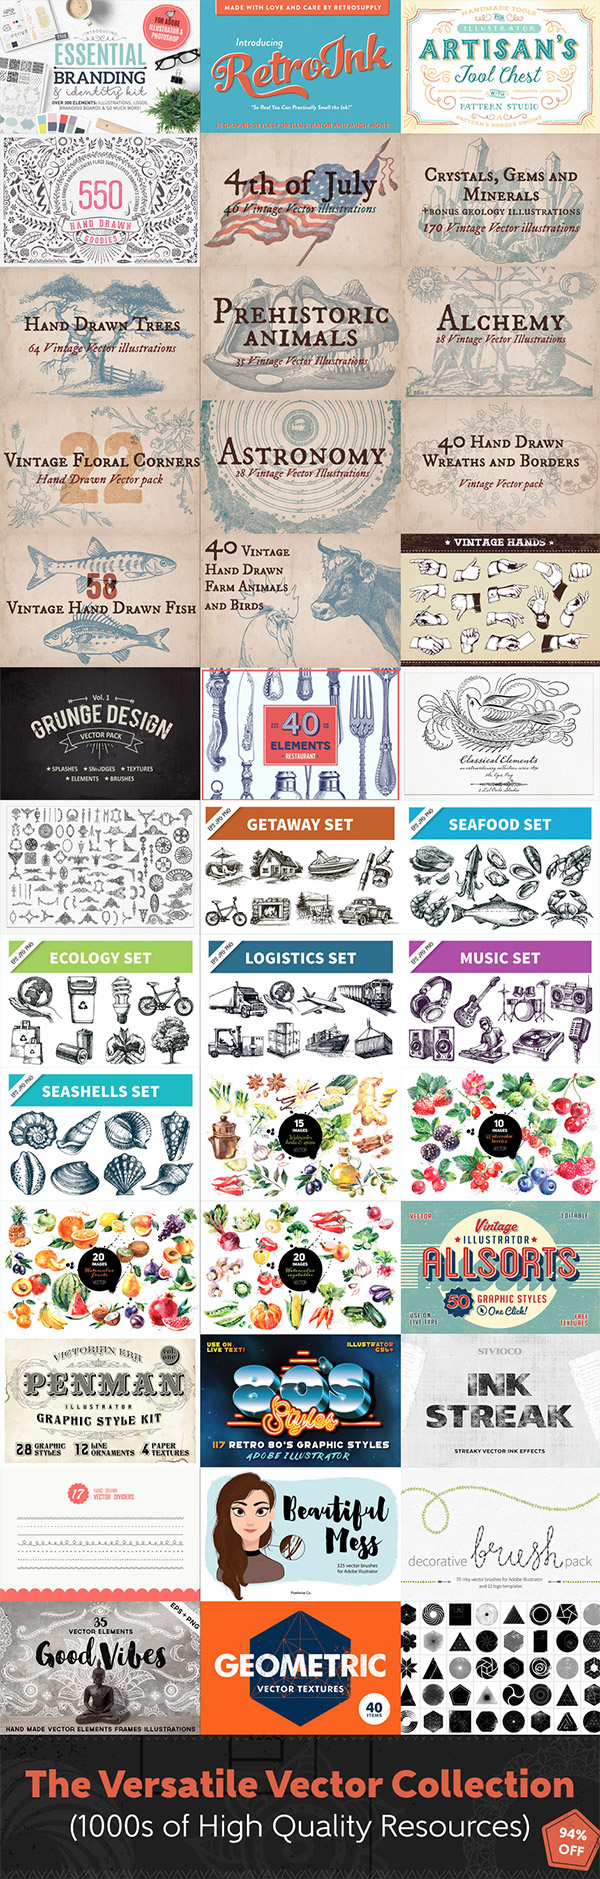 Download This Versatile Vector Collection for Just $29